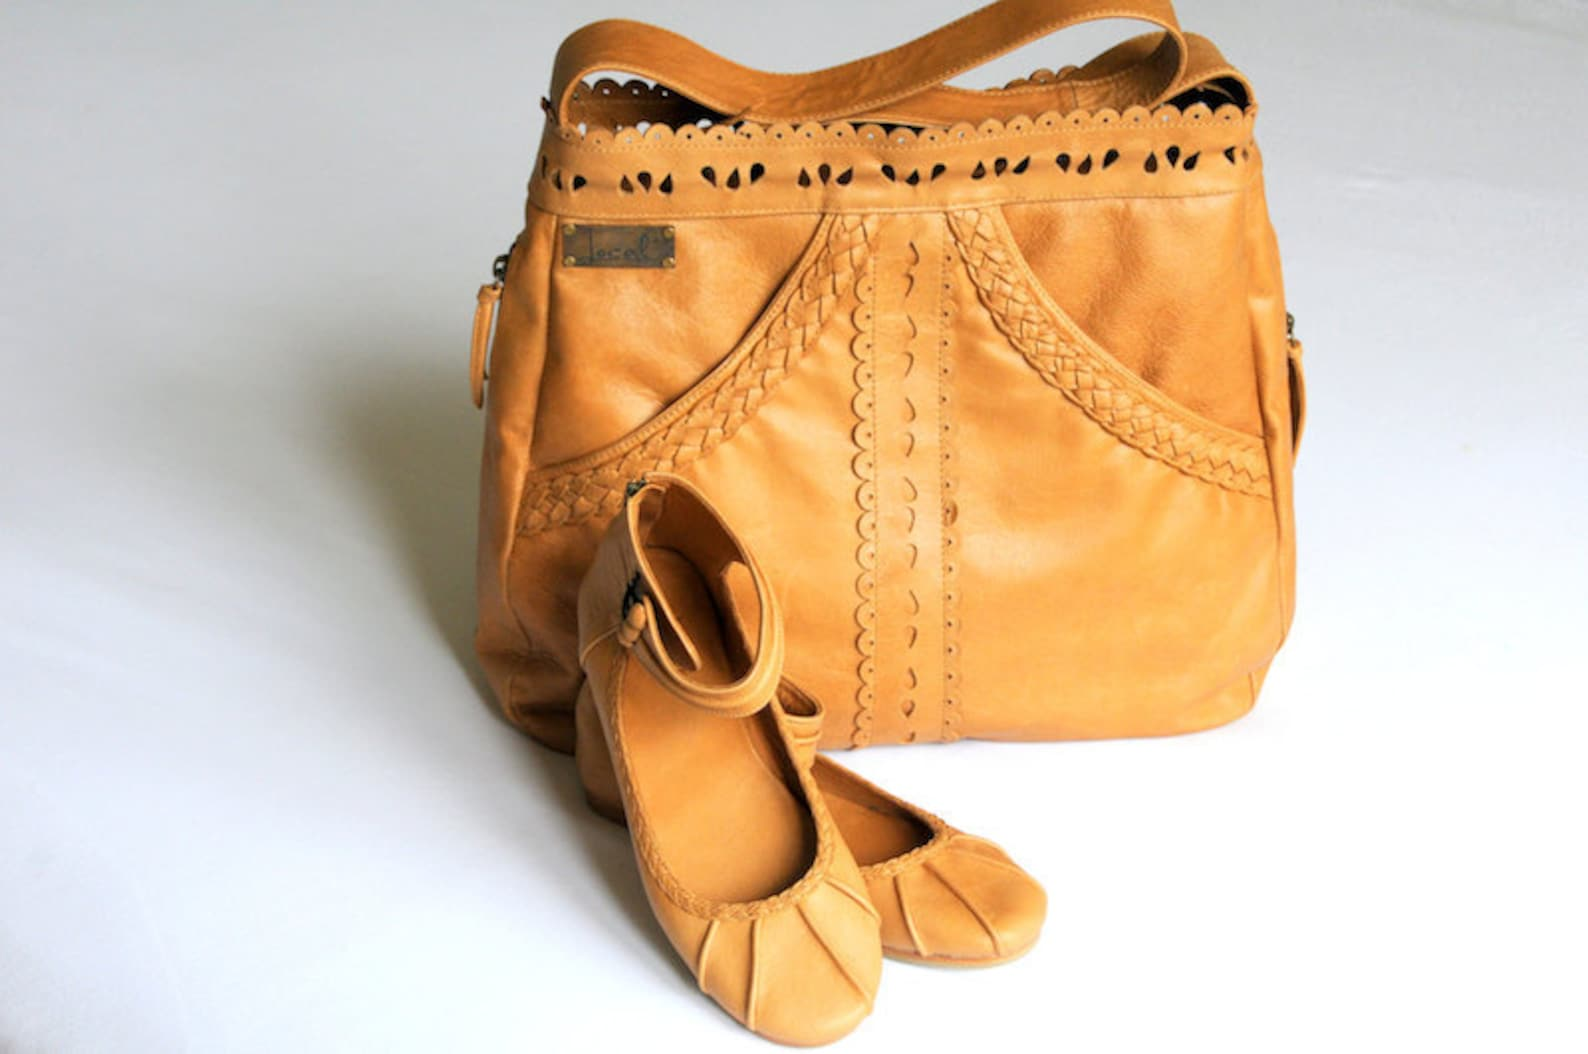 l'amour & muse. handmade shoulder leather bag / ballet flats. available in different leather colors.